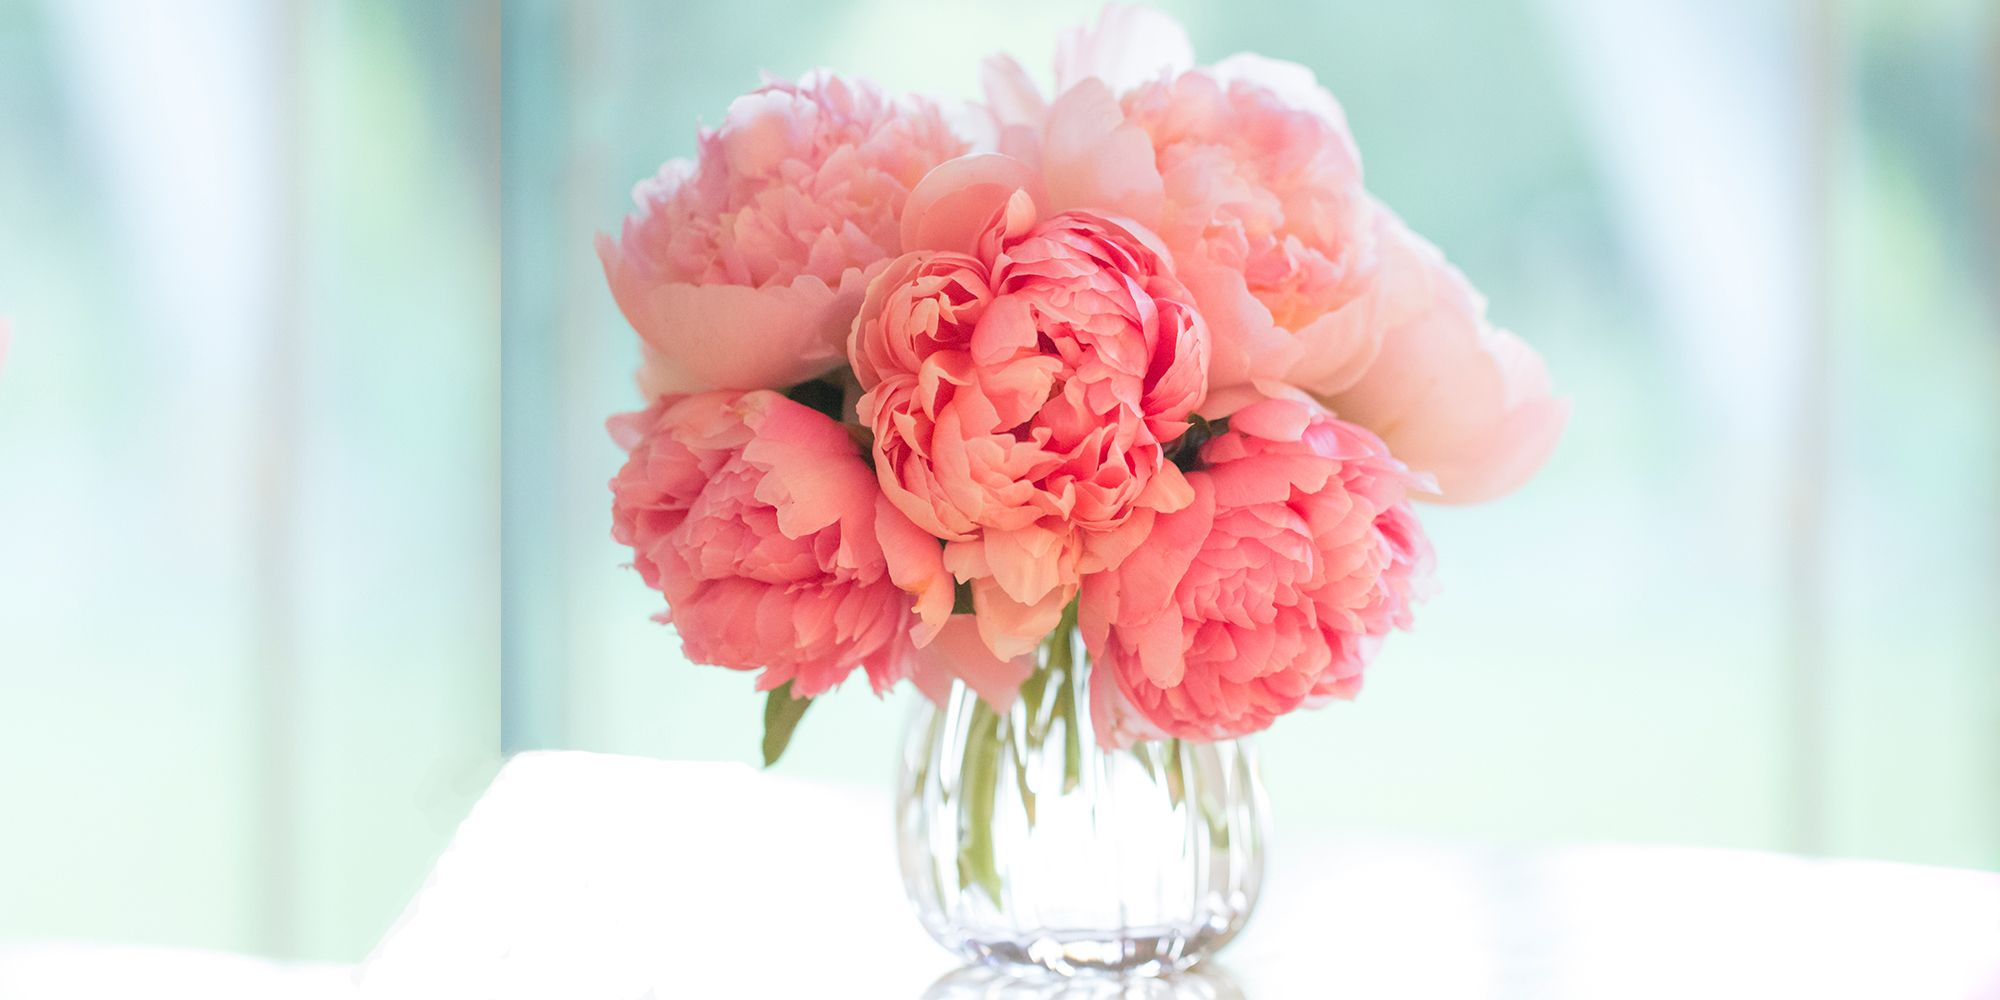 11 best flowers for valentine's day - popular roses & arrangements, Ideas